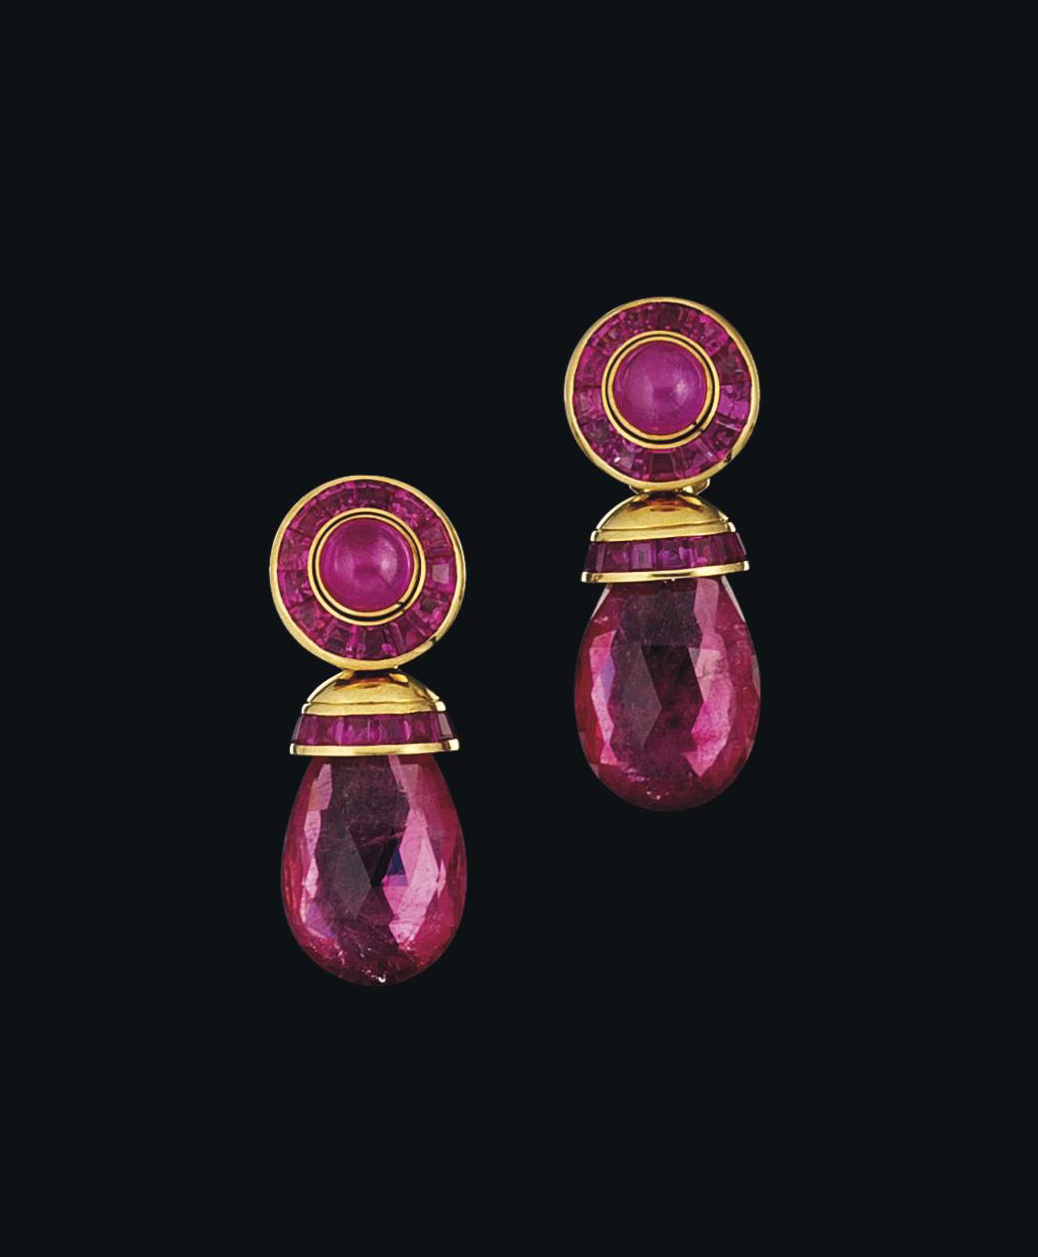 A pair of pink tourmaline and pink sapphire earrings, by Hemmerle